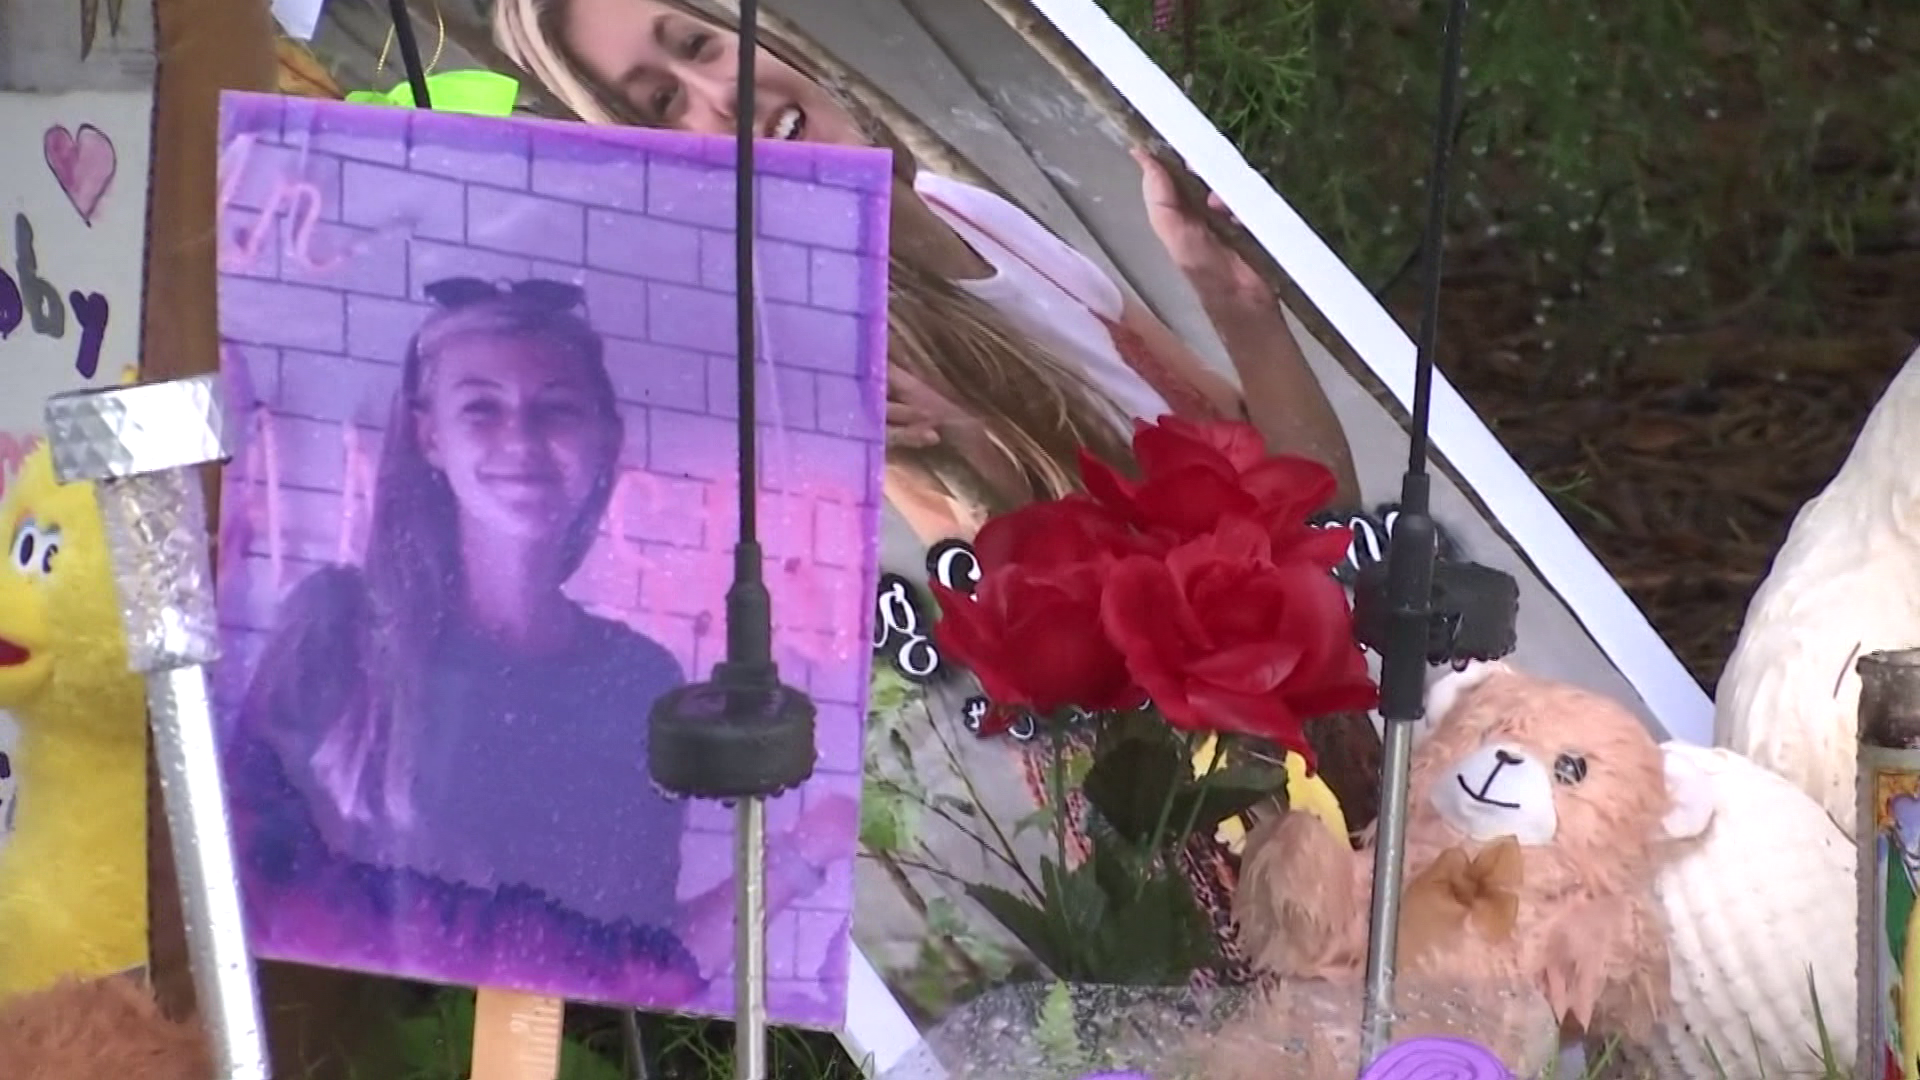 Memorial to Gabby Petito grows in North Port - Wink News